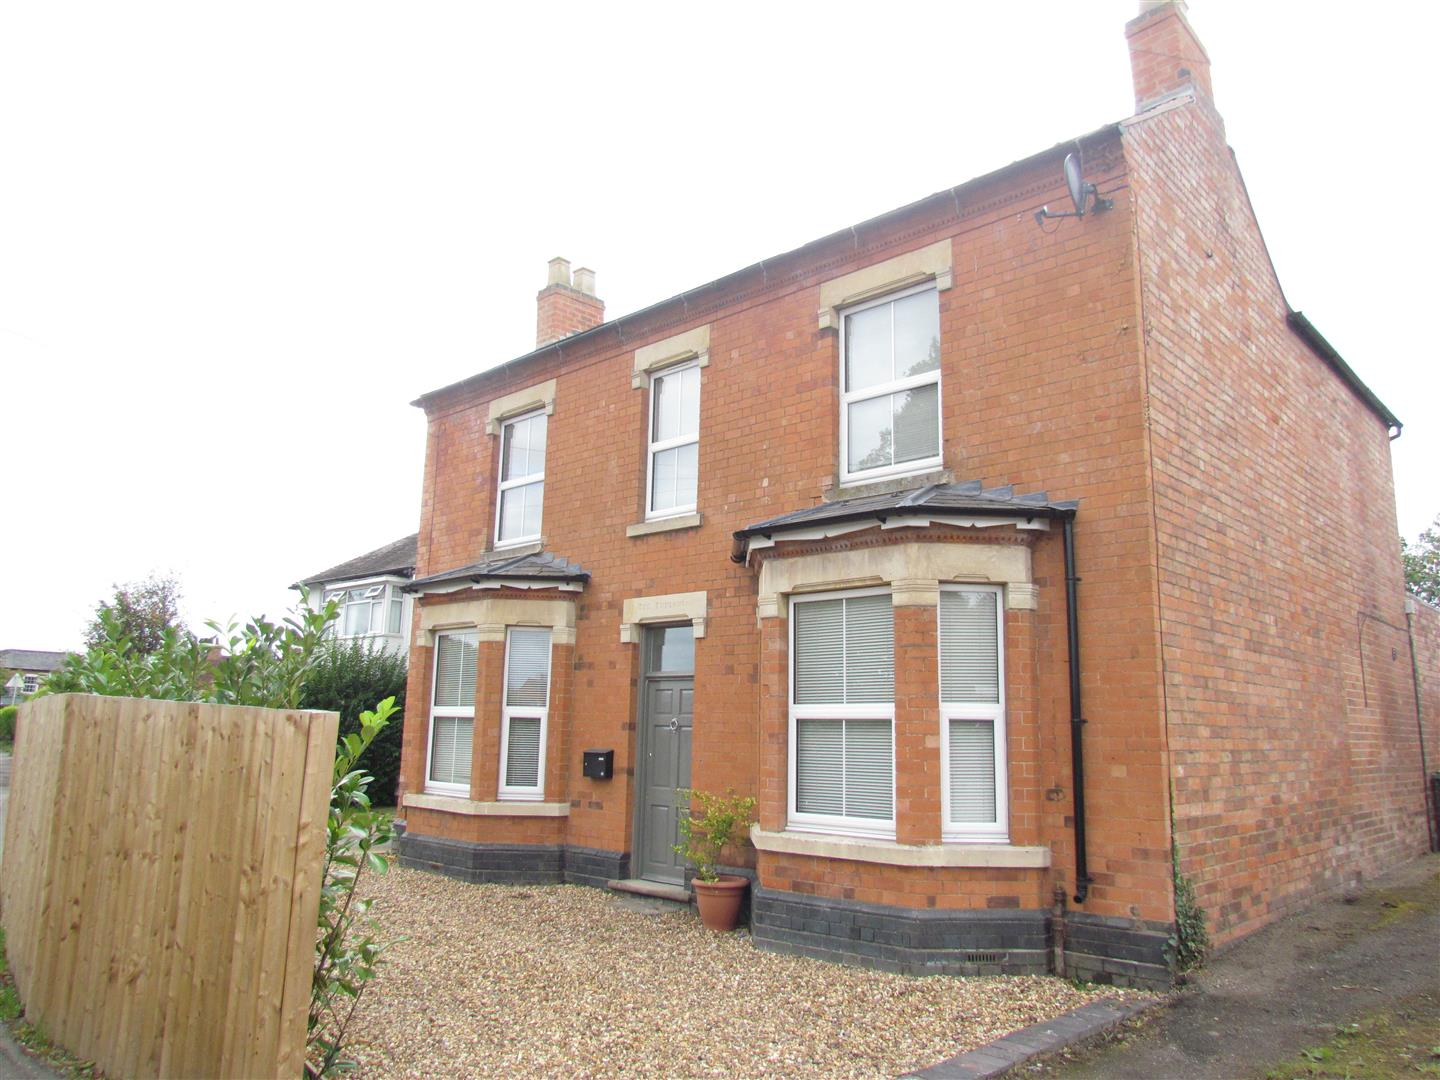 4 Bedrooms House for sale in Main Road, Hallow, Worcester